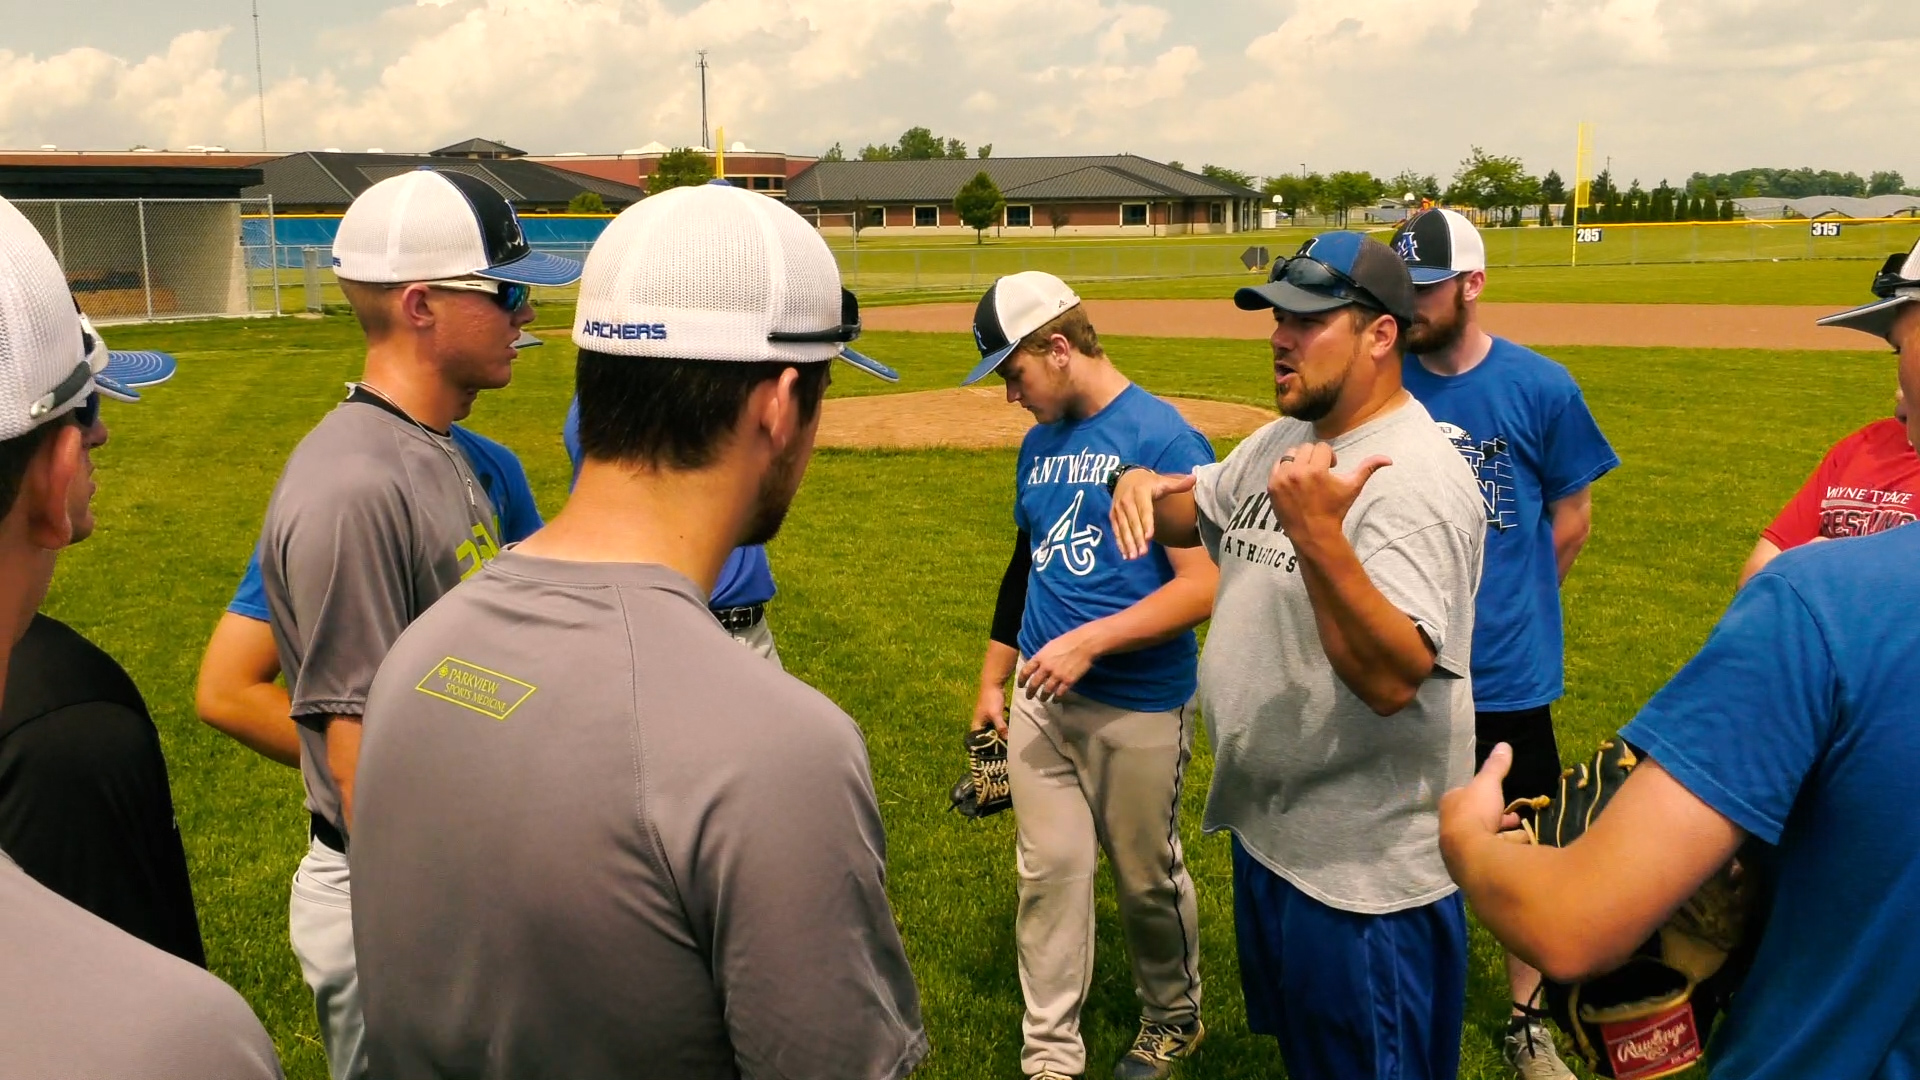 Antwerp enters first baseball state finals with confidence